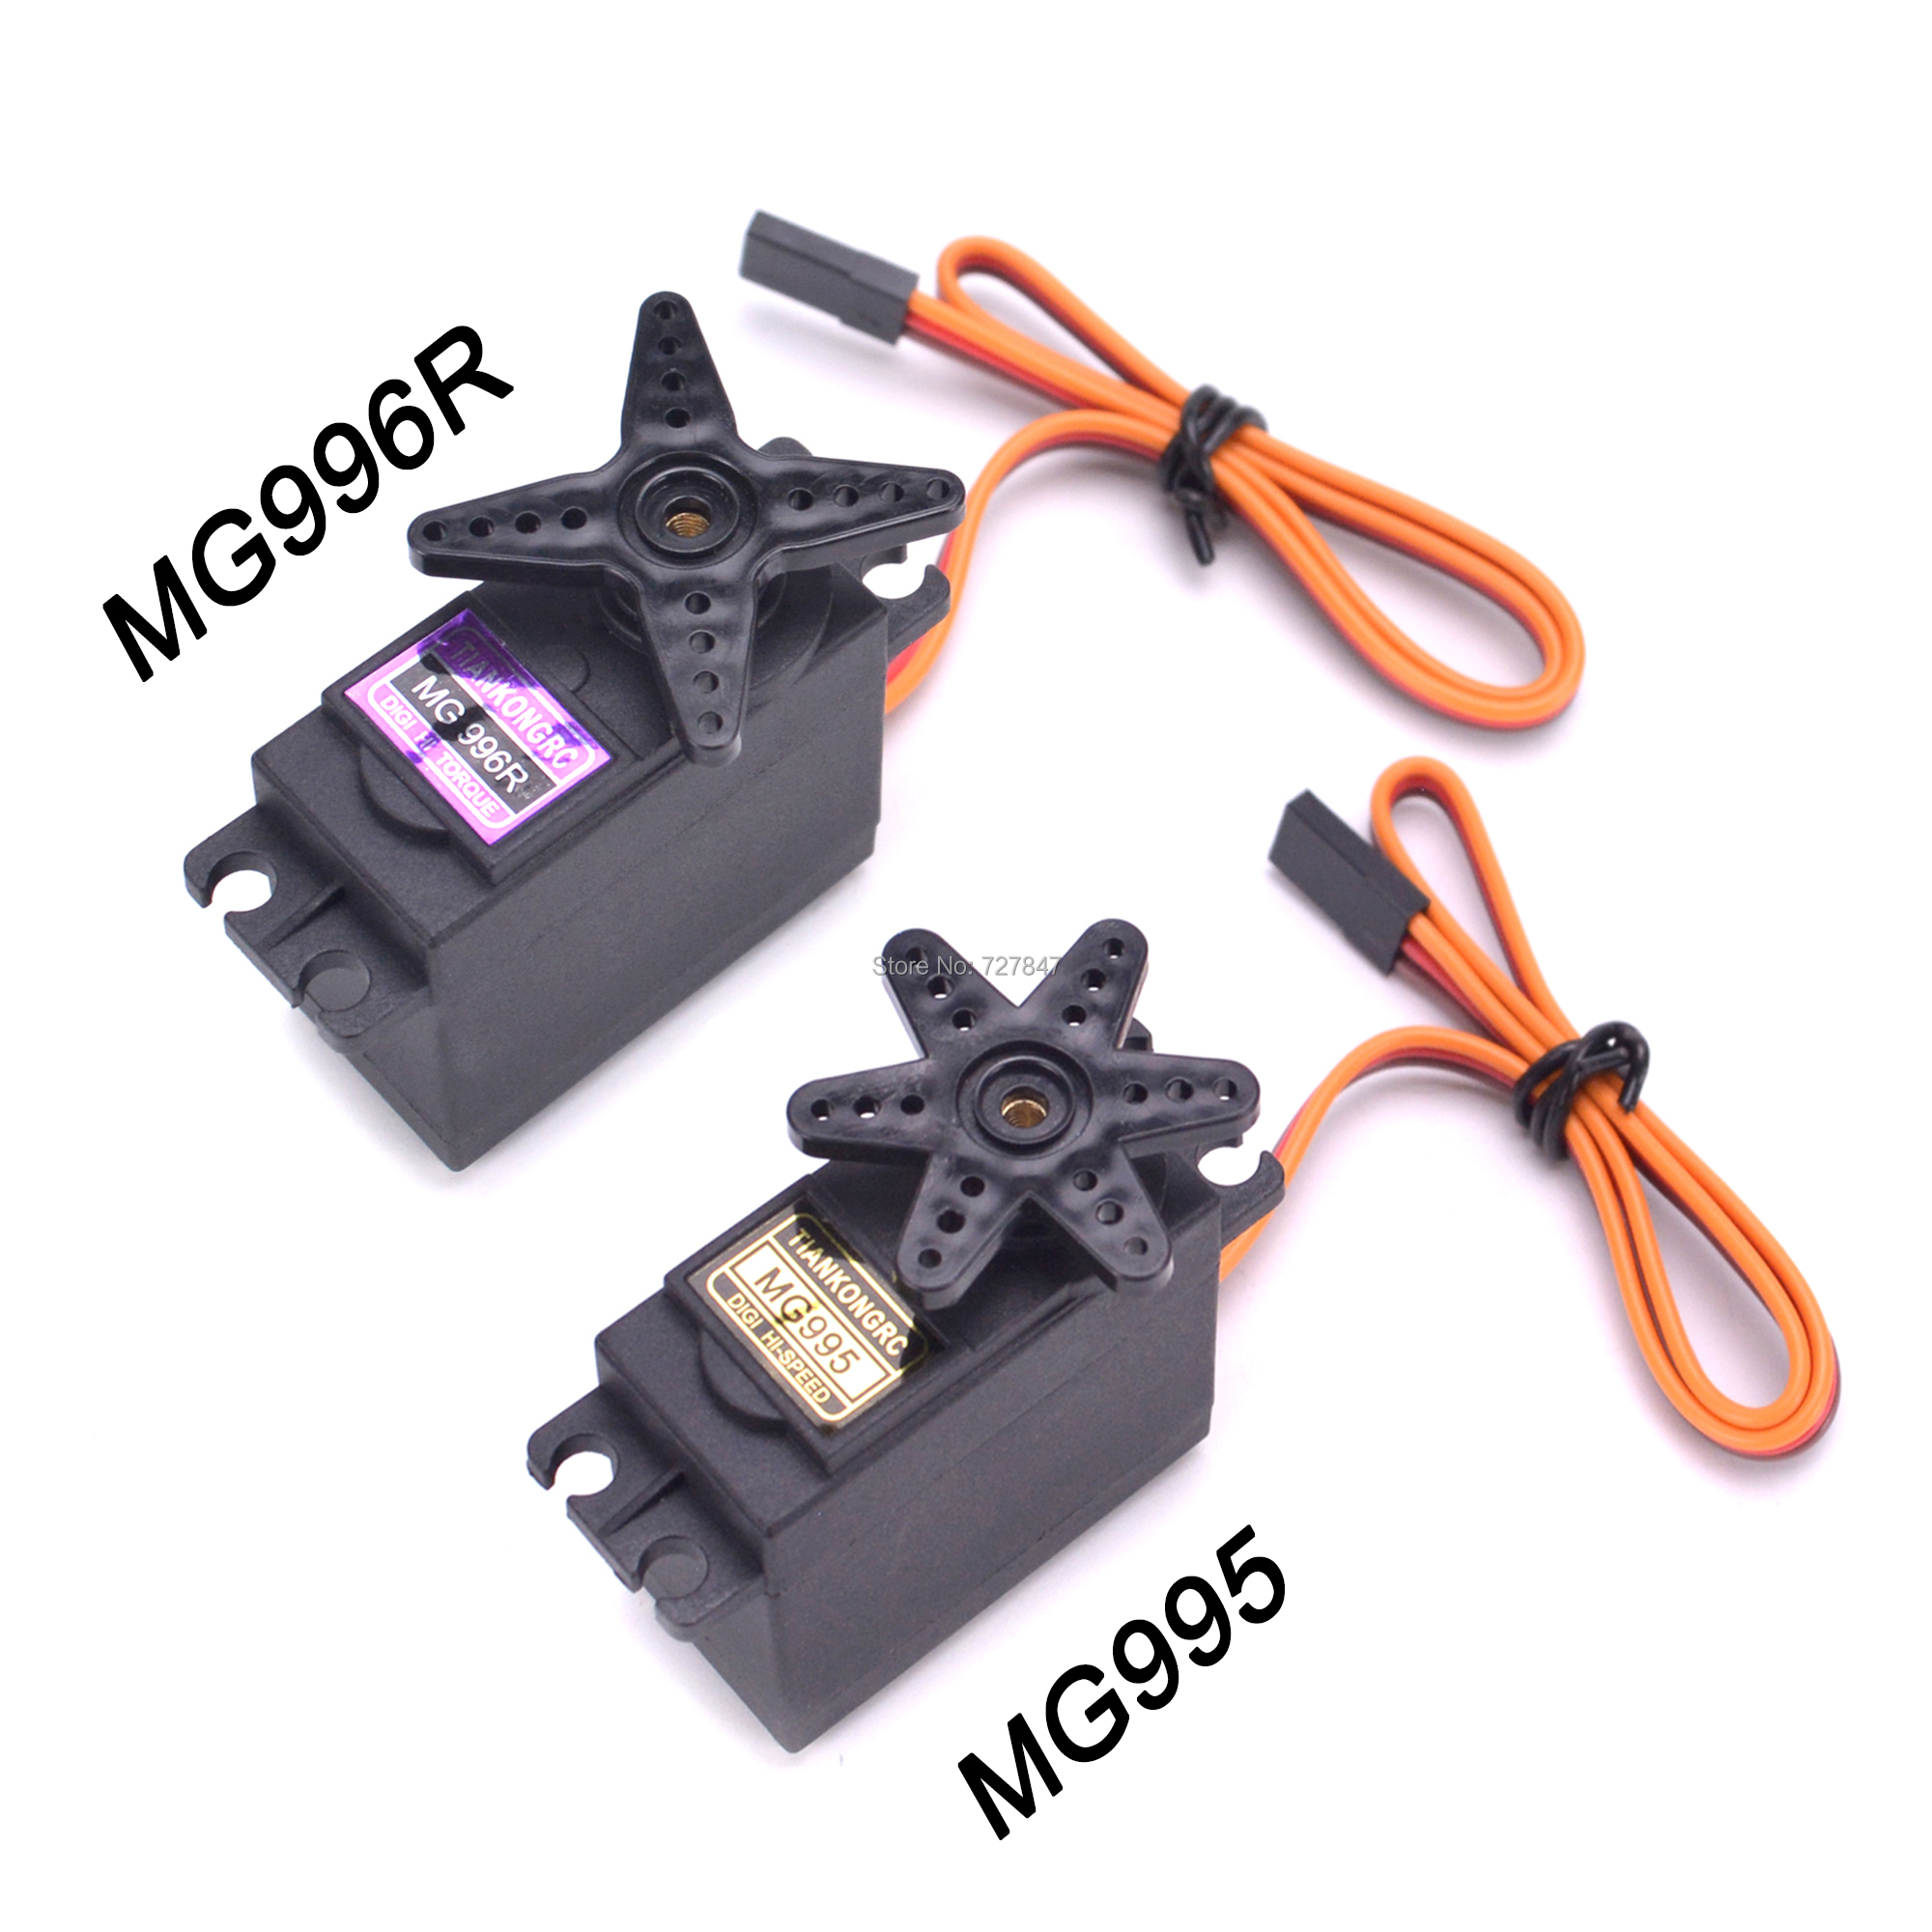 NEW MG995 / MG996R MG996 Metal Gear RC Servo 13KG High Speed for Racing Car truch Parts JR Car RC Model Helicopter Boat